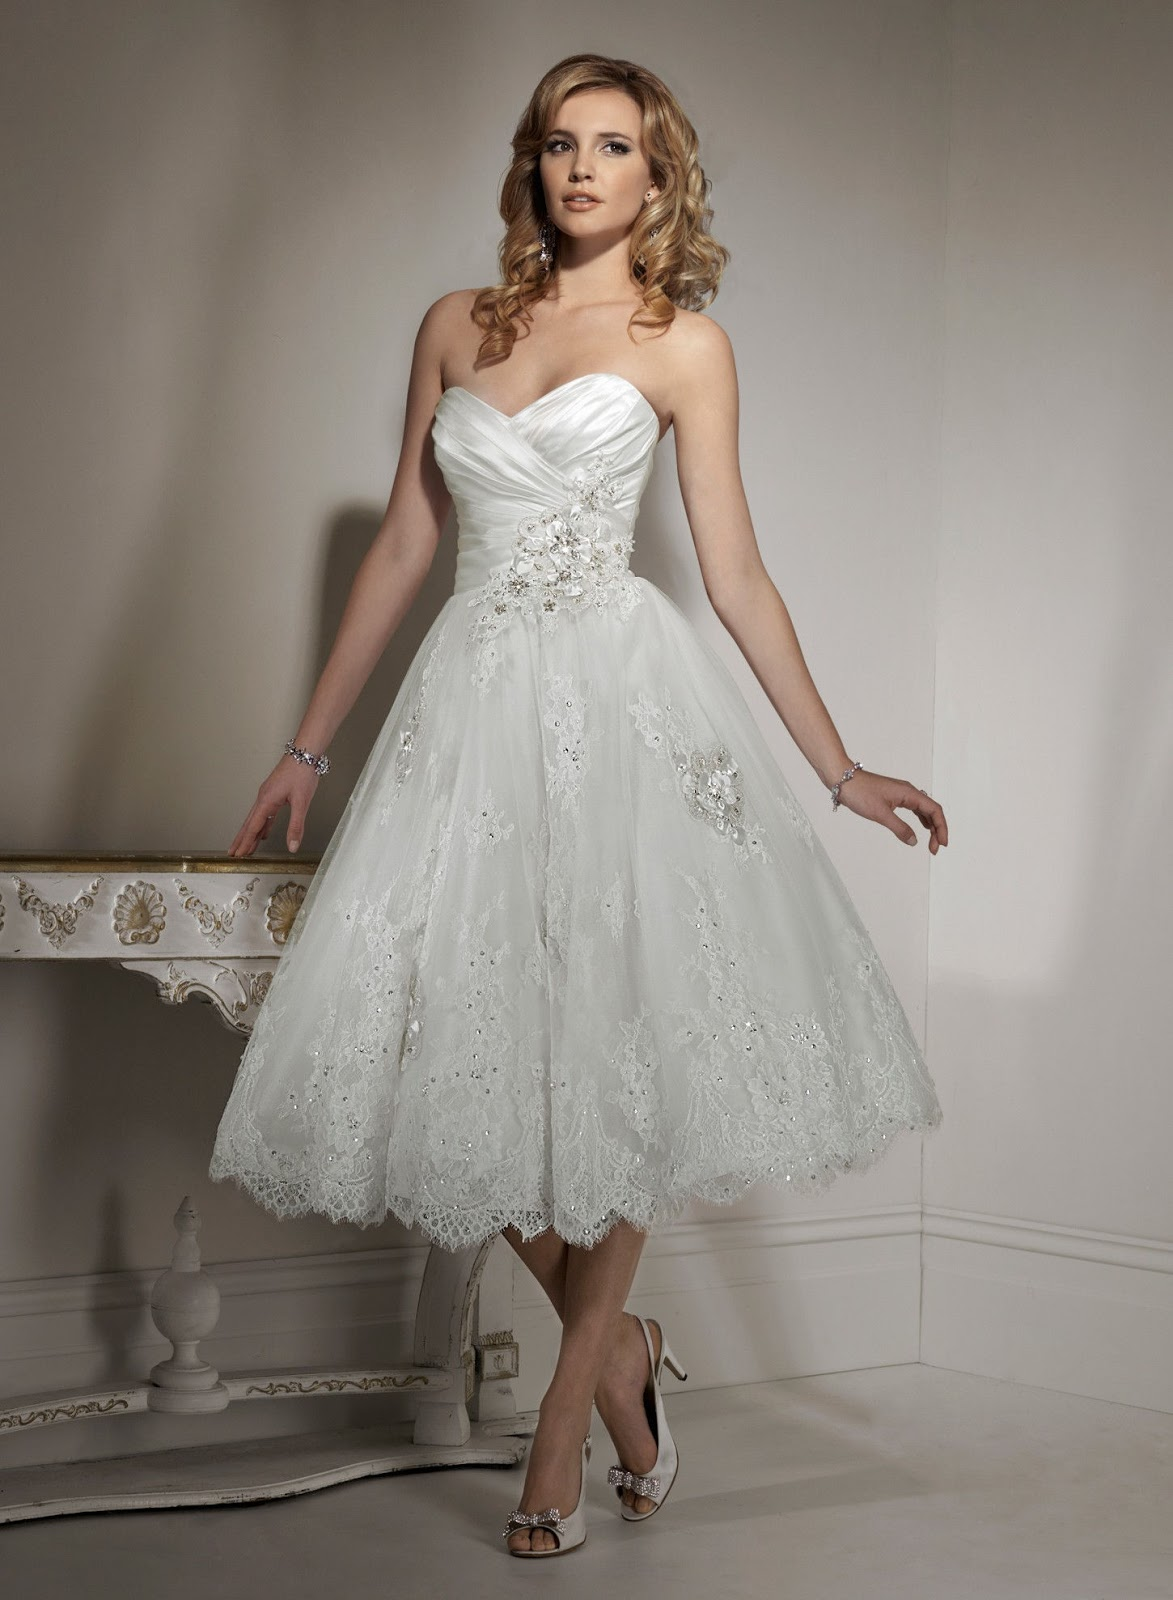 wedding dresses for older brides second weddings, short wedding dresses for older brides, informal wedding dresses for older brides, wedding dresses for older brides with sleeves, casual wedding dresses for older brides